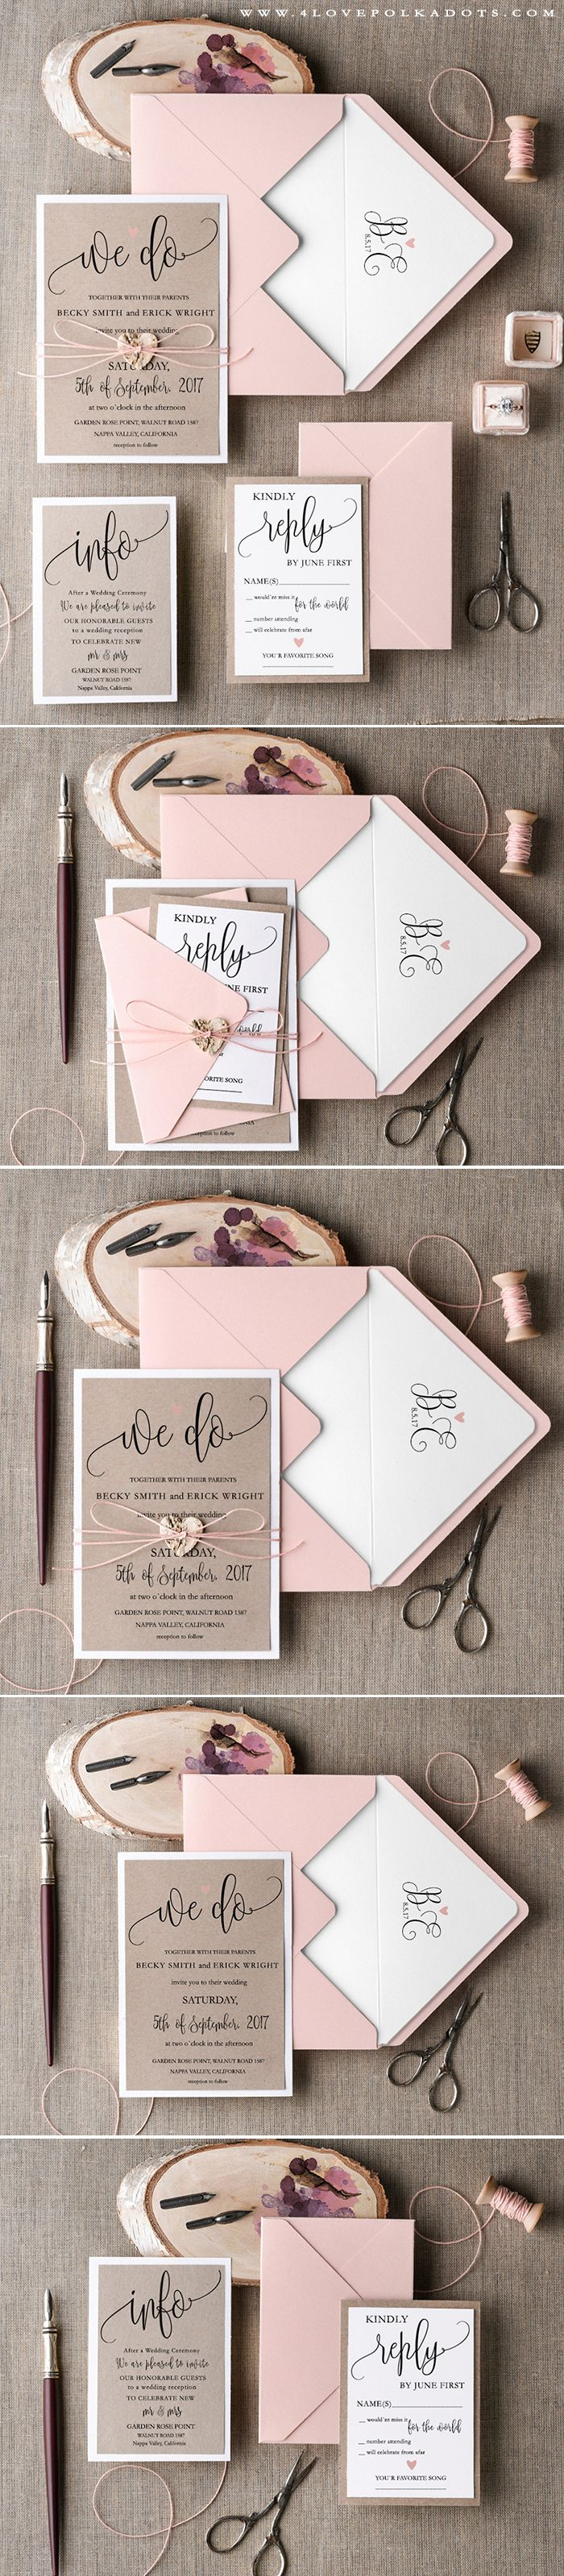 Pink u0026 Eco Handmade Wedding Invitation summerwedding